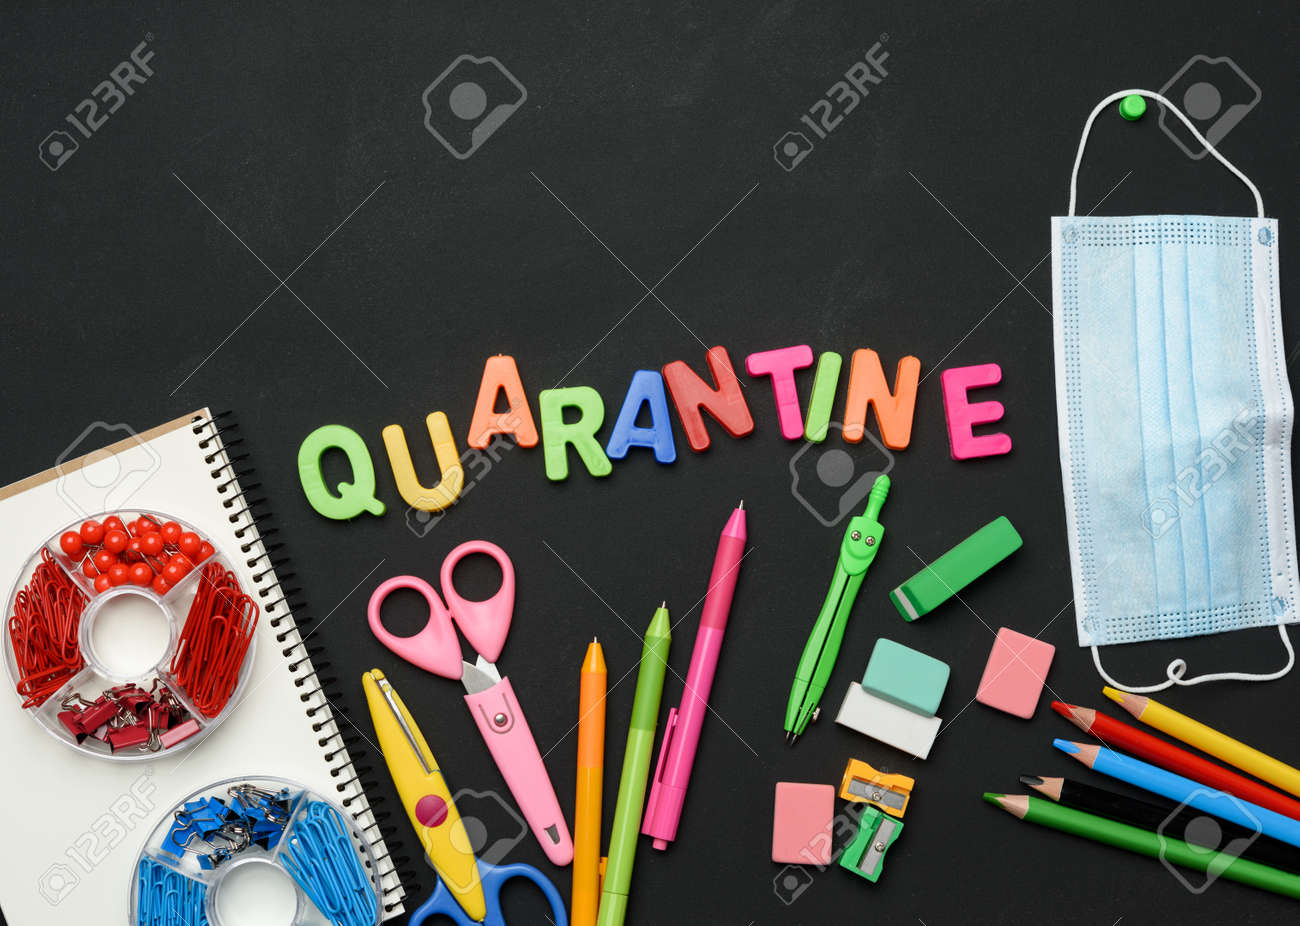 inscription quarantine from multicolored plastic letters and school supplies on black chalk board, concept of closing schools during a pandemic - 159813711